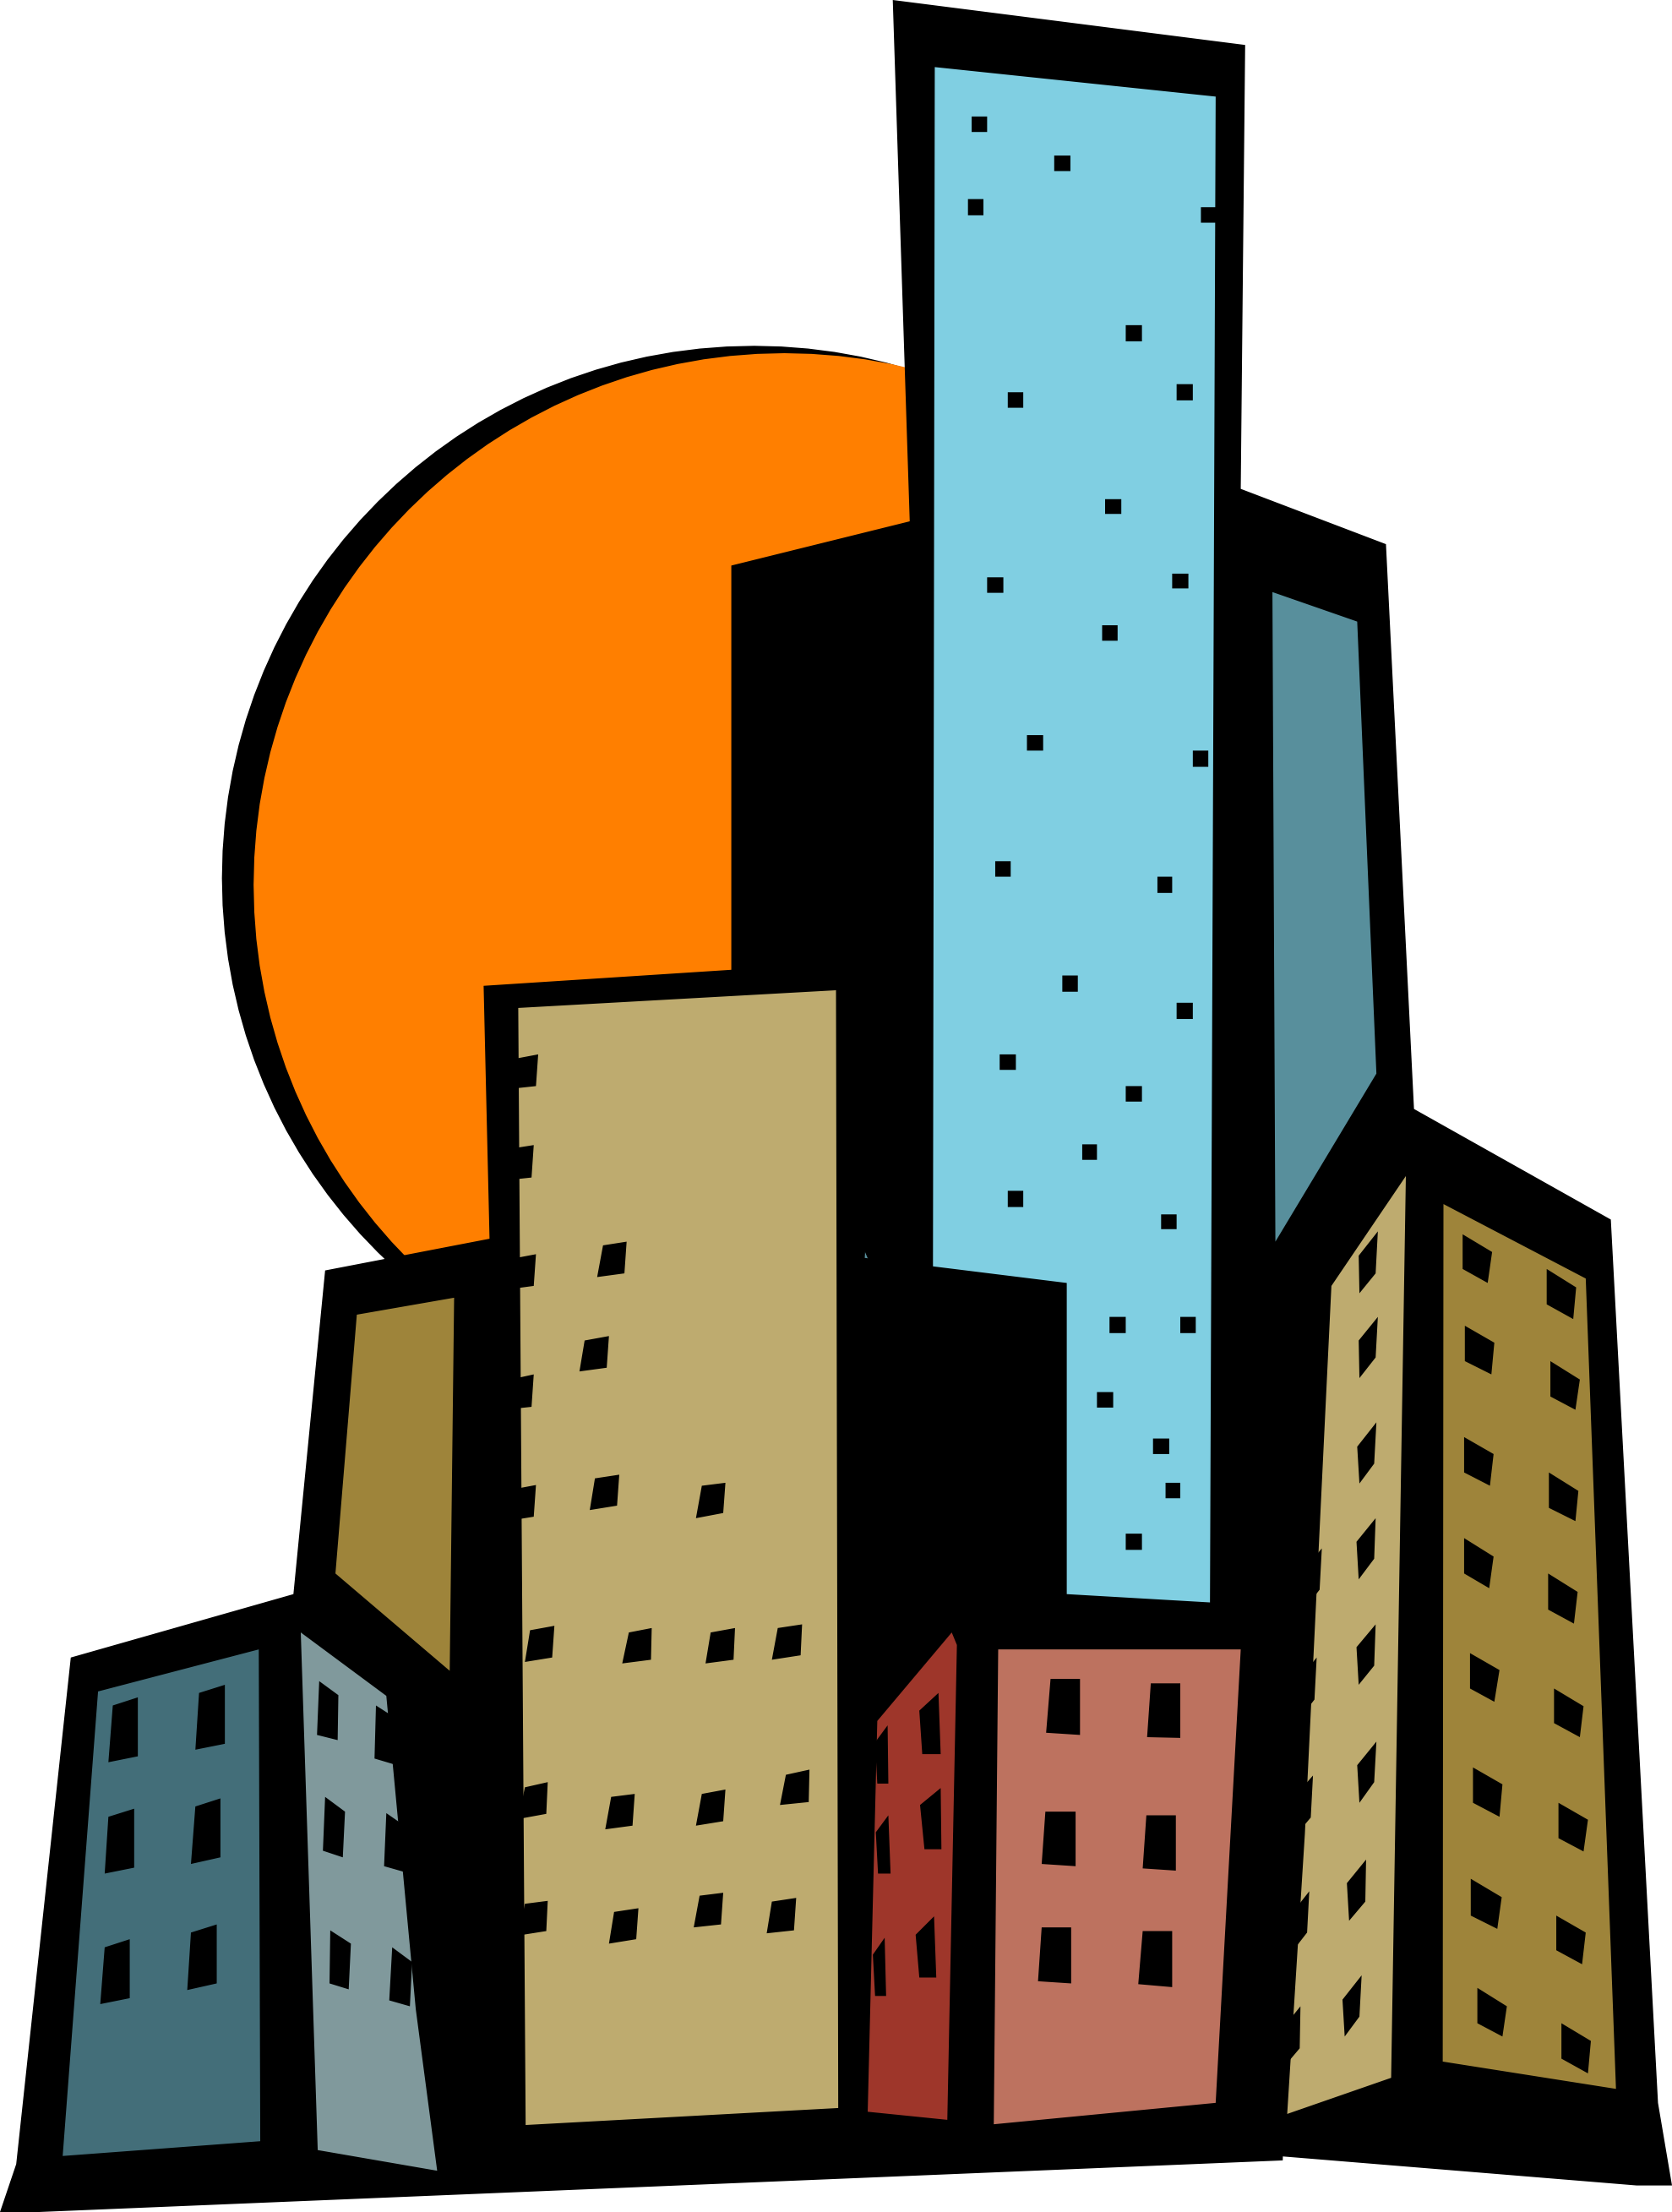 Skyscraper clipart #15, Download drawings